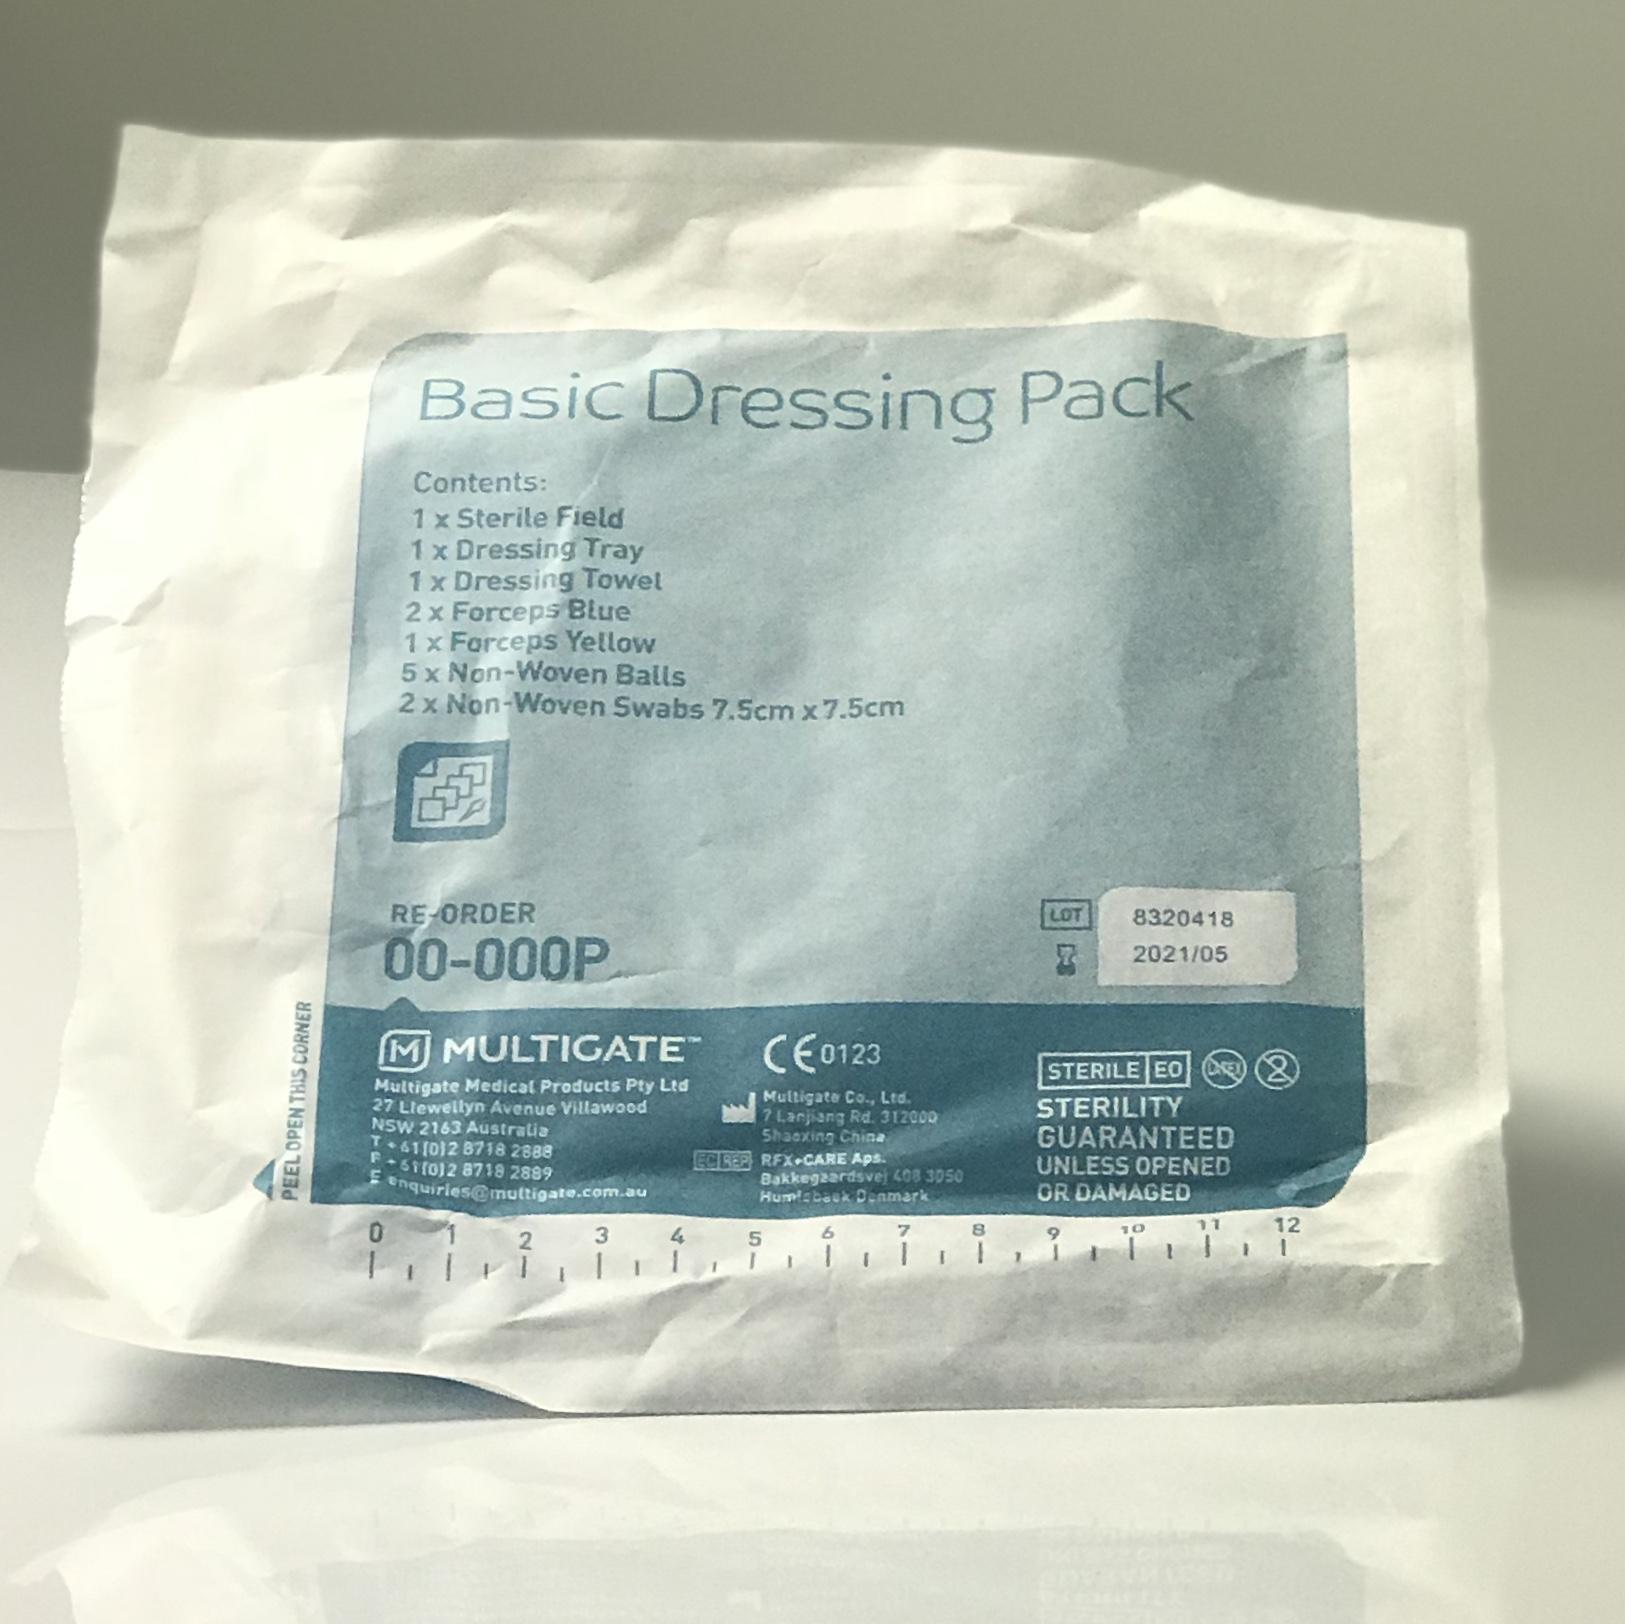 MULTIGATE BASIC DRESSING PACK WITH NON WOVEN BALLS AND SWABS- PEEL PACK, EACH